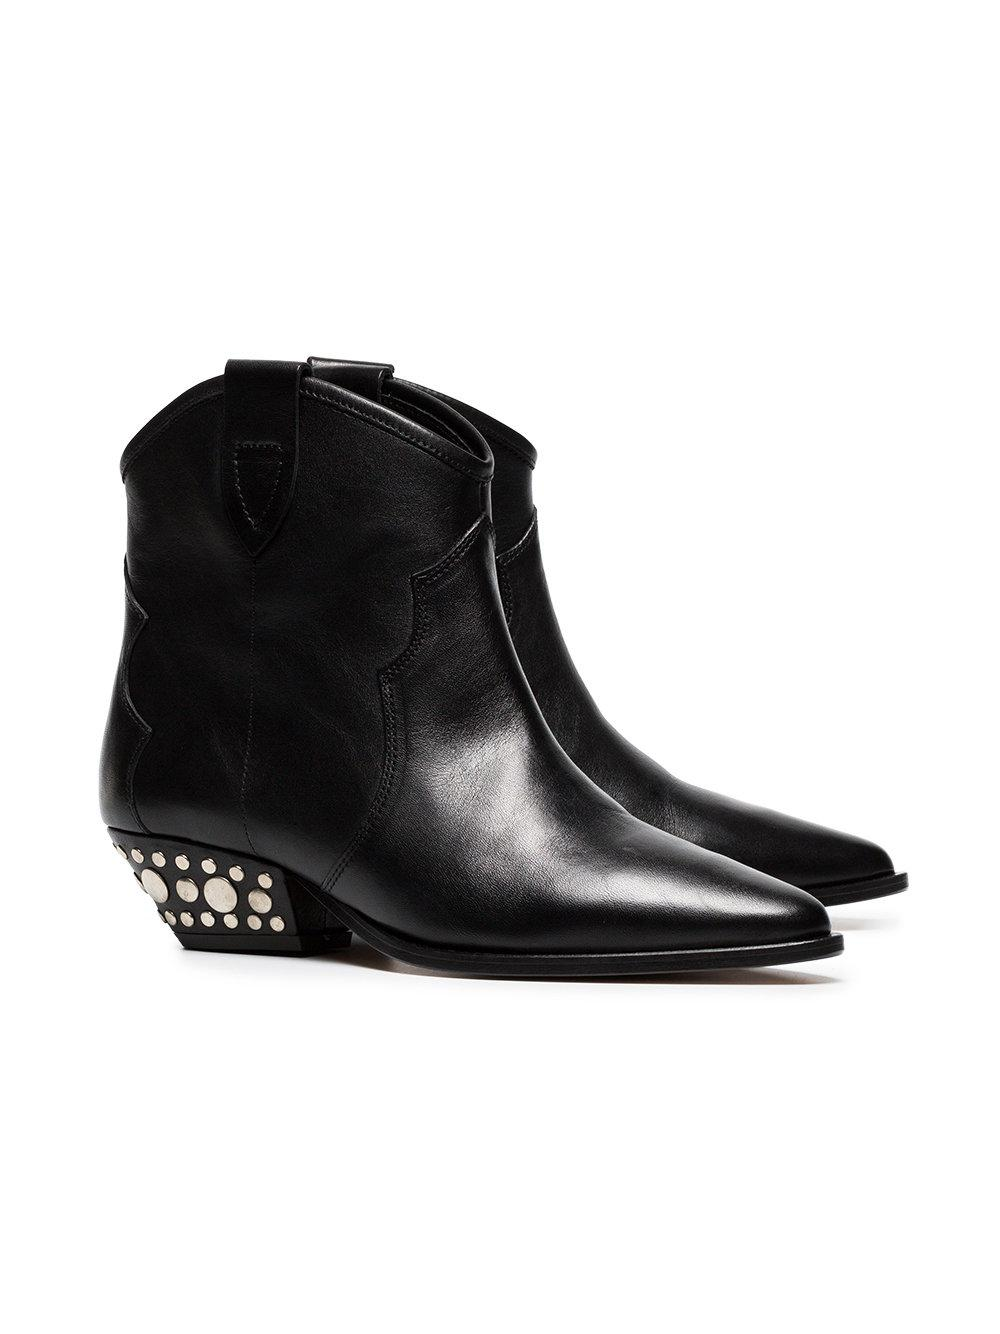 0d46df9f742 Isabel Marant Black Dawyna 40 Leather Ankle Boots